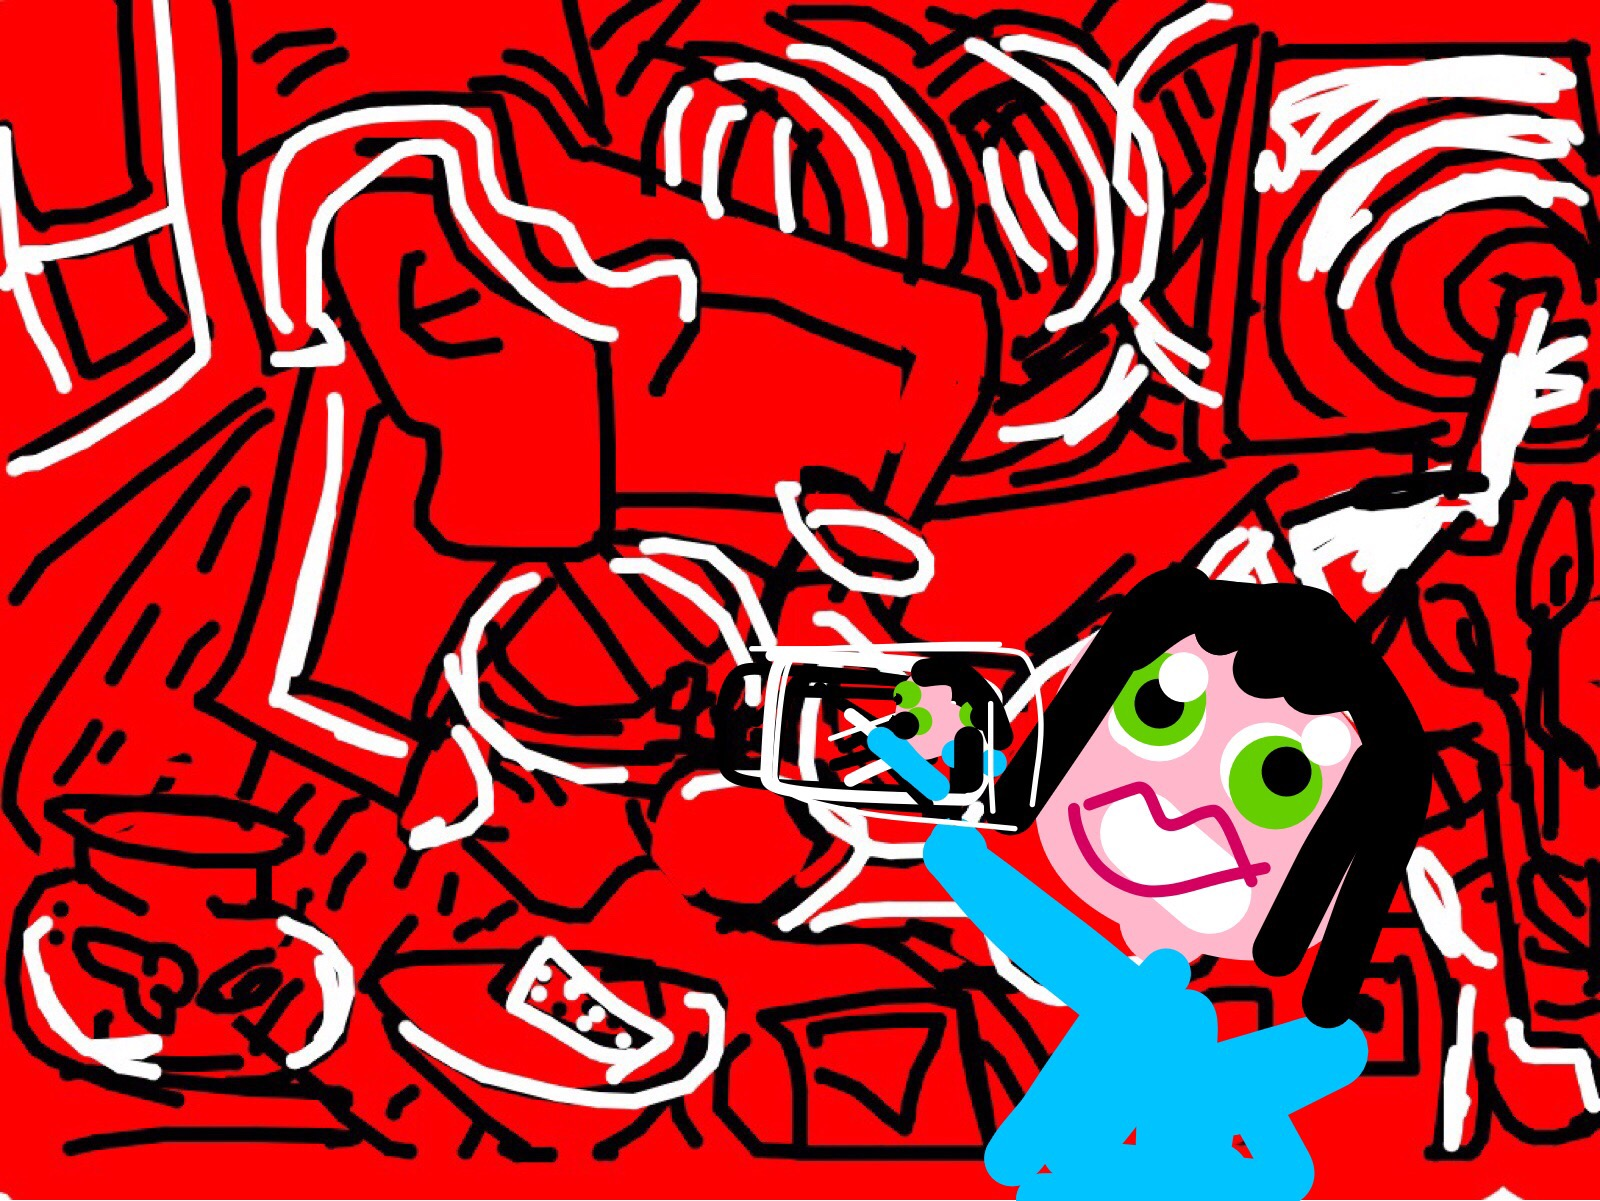 Museum Selfie with Red Room, Keith Haring, 1988